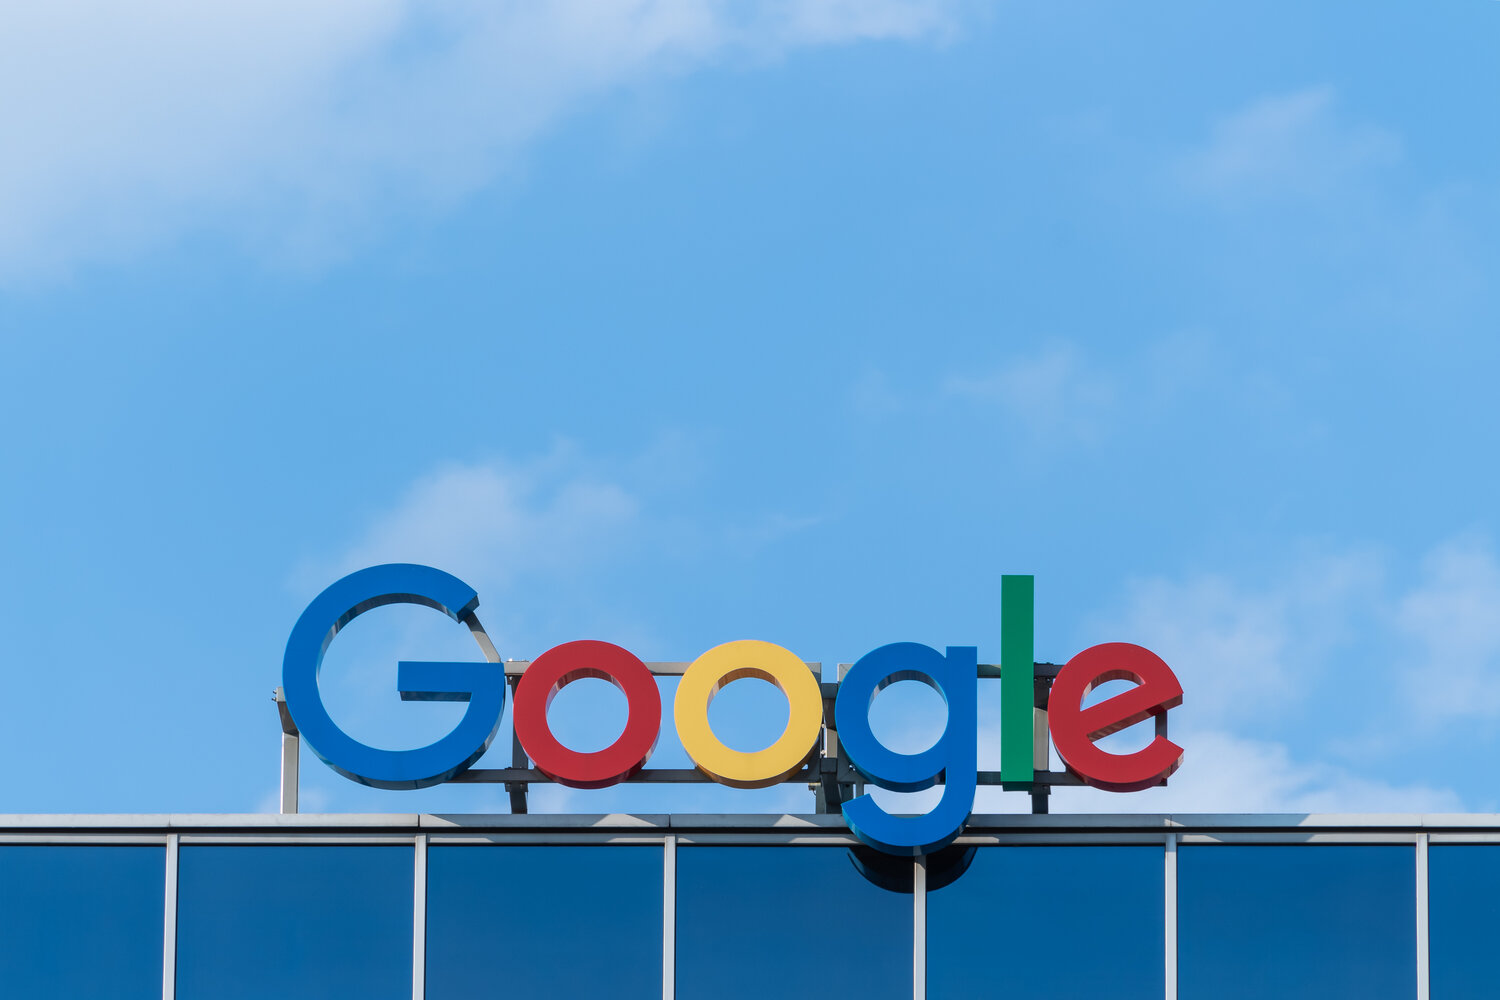 Google: one of the best examples of corporations where an entrepreneurial mindset is actively encouraged by leadership